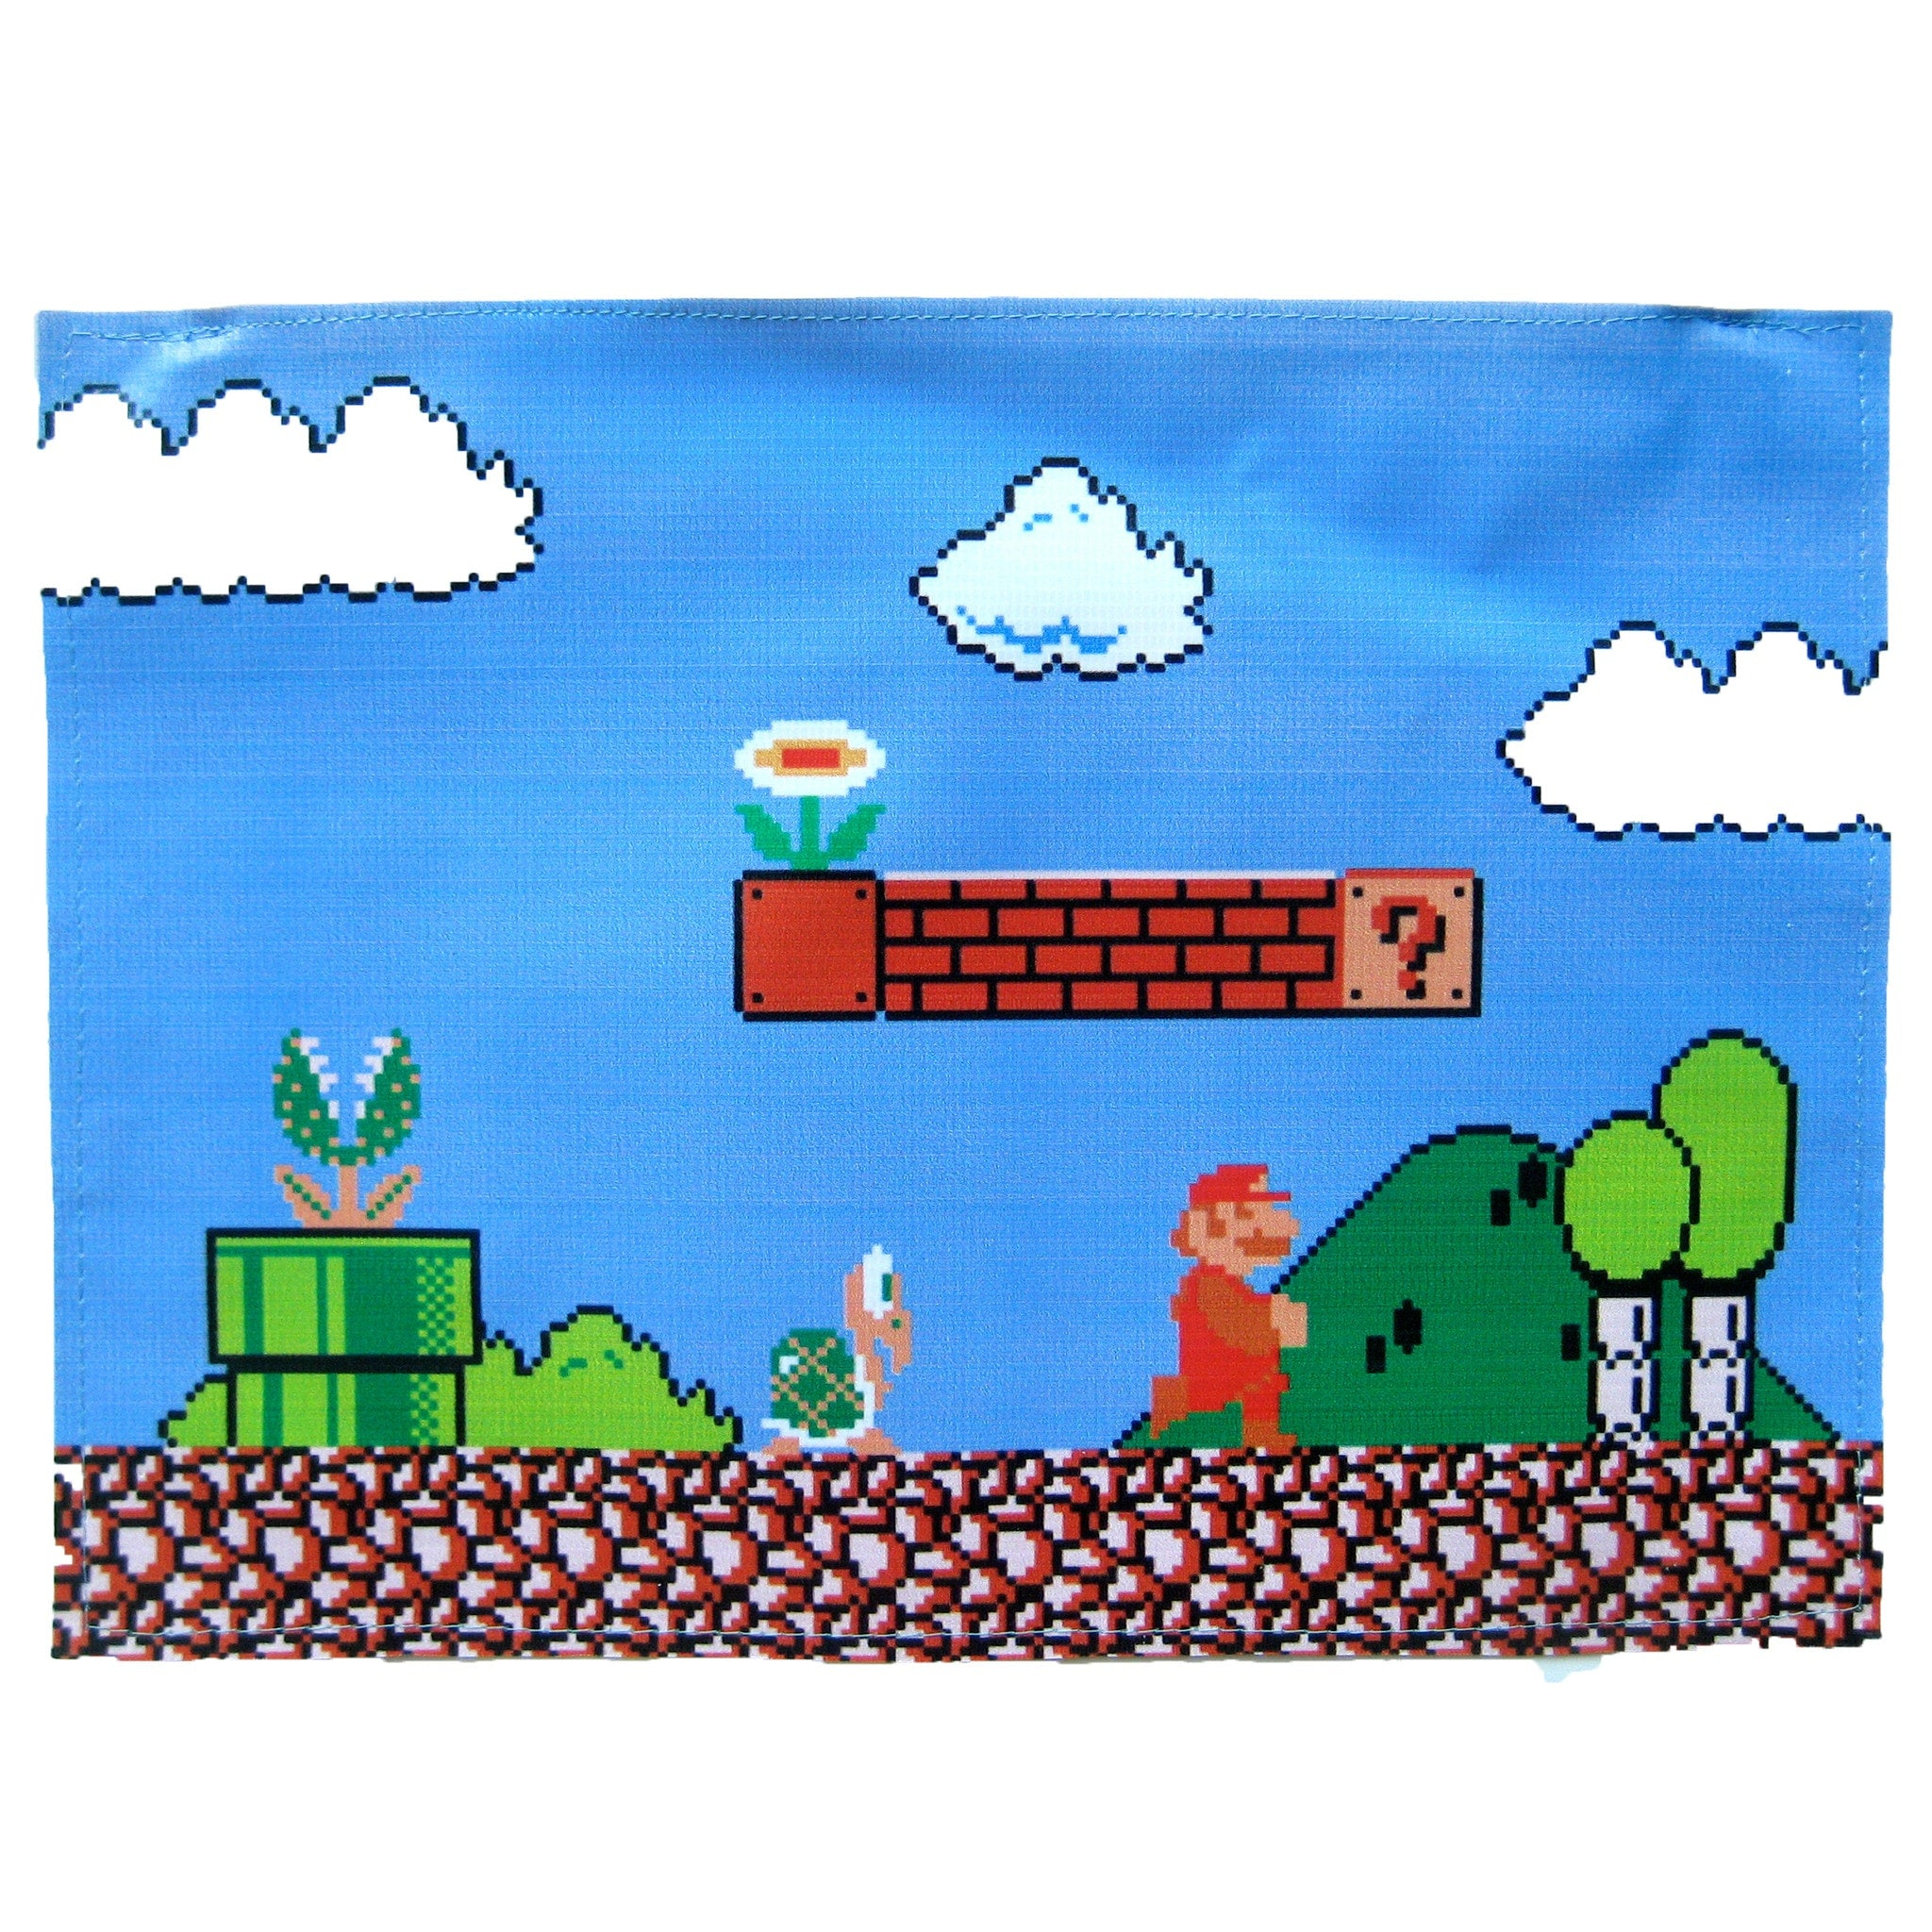 large-upcycled-vinyl-classic-super-mario-video-game-themed-print-clutch-bag